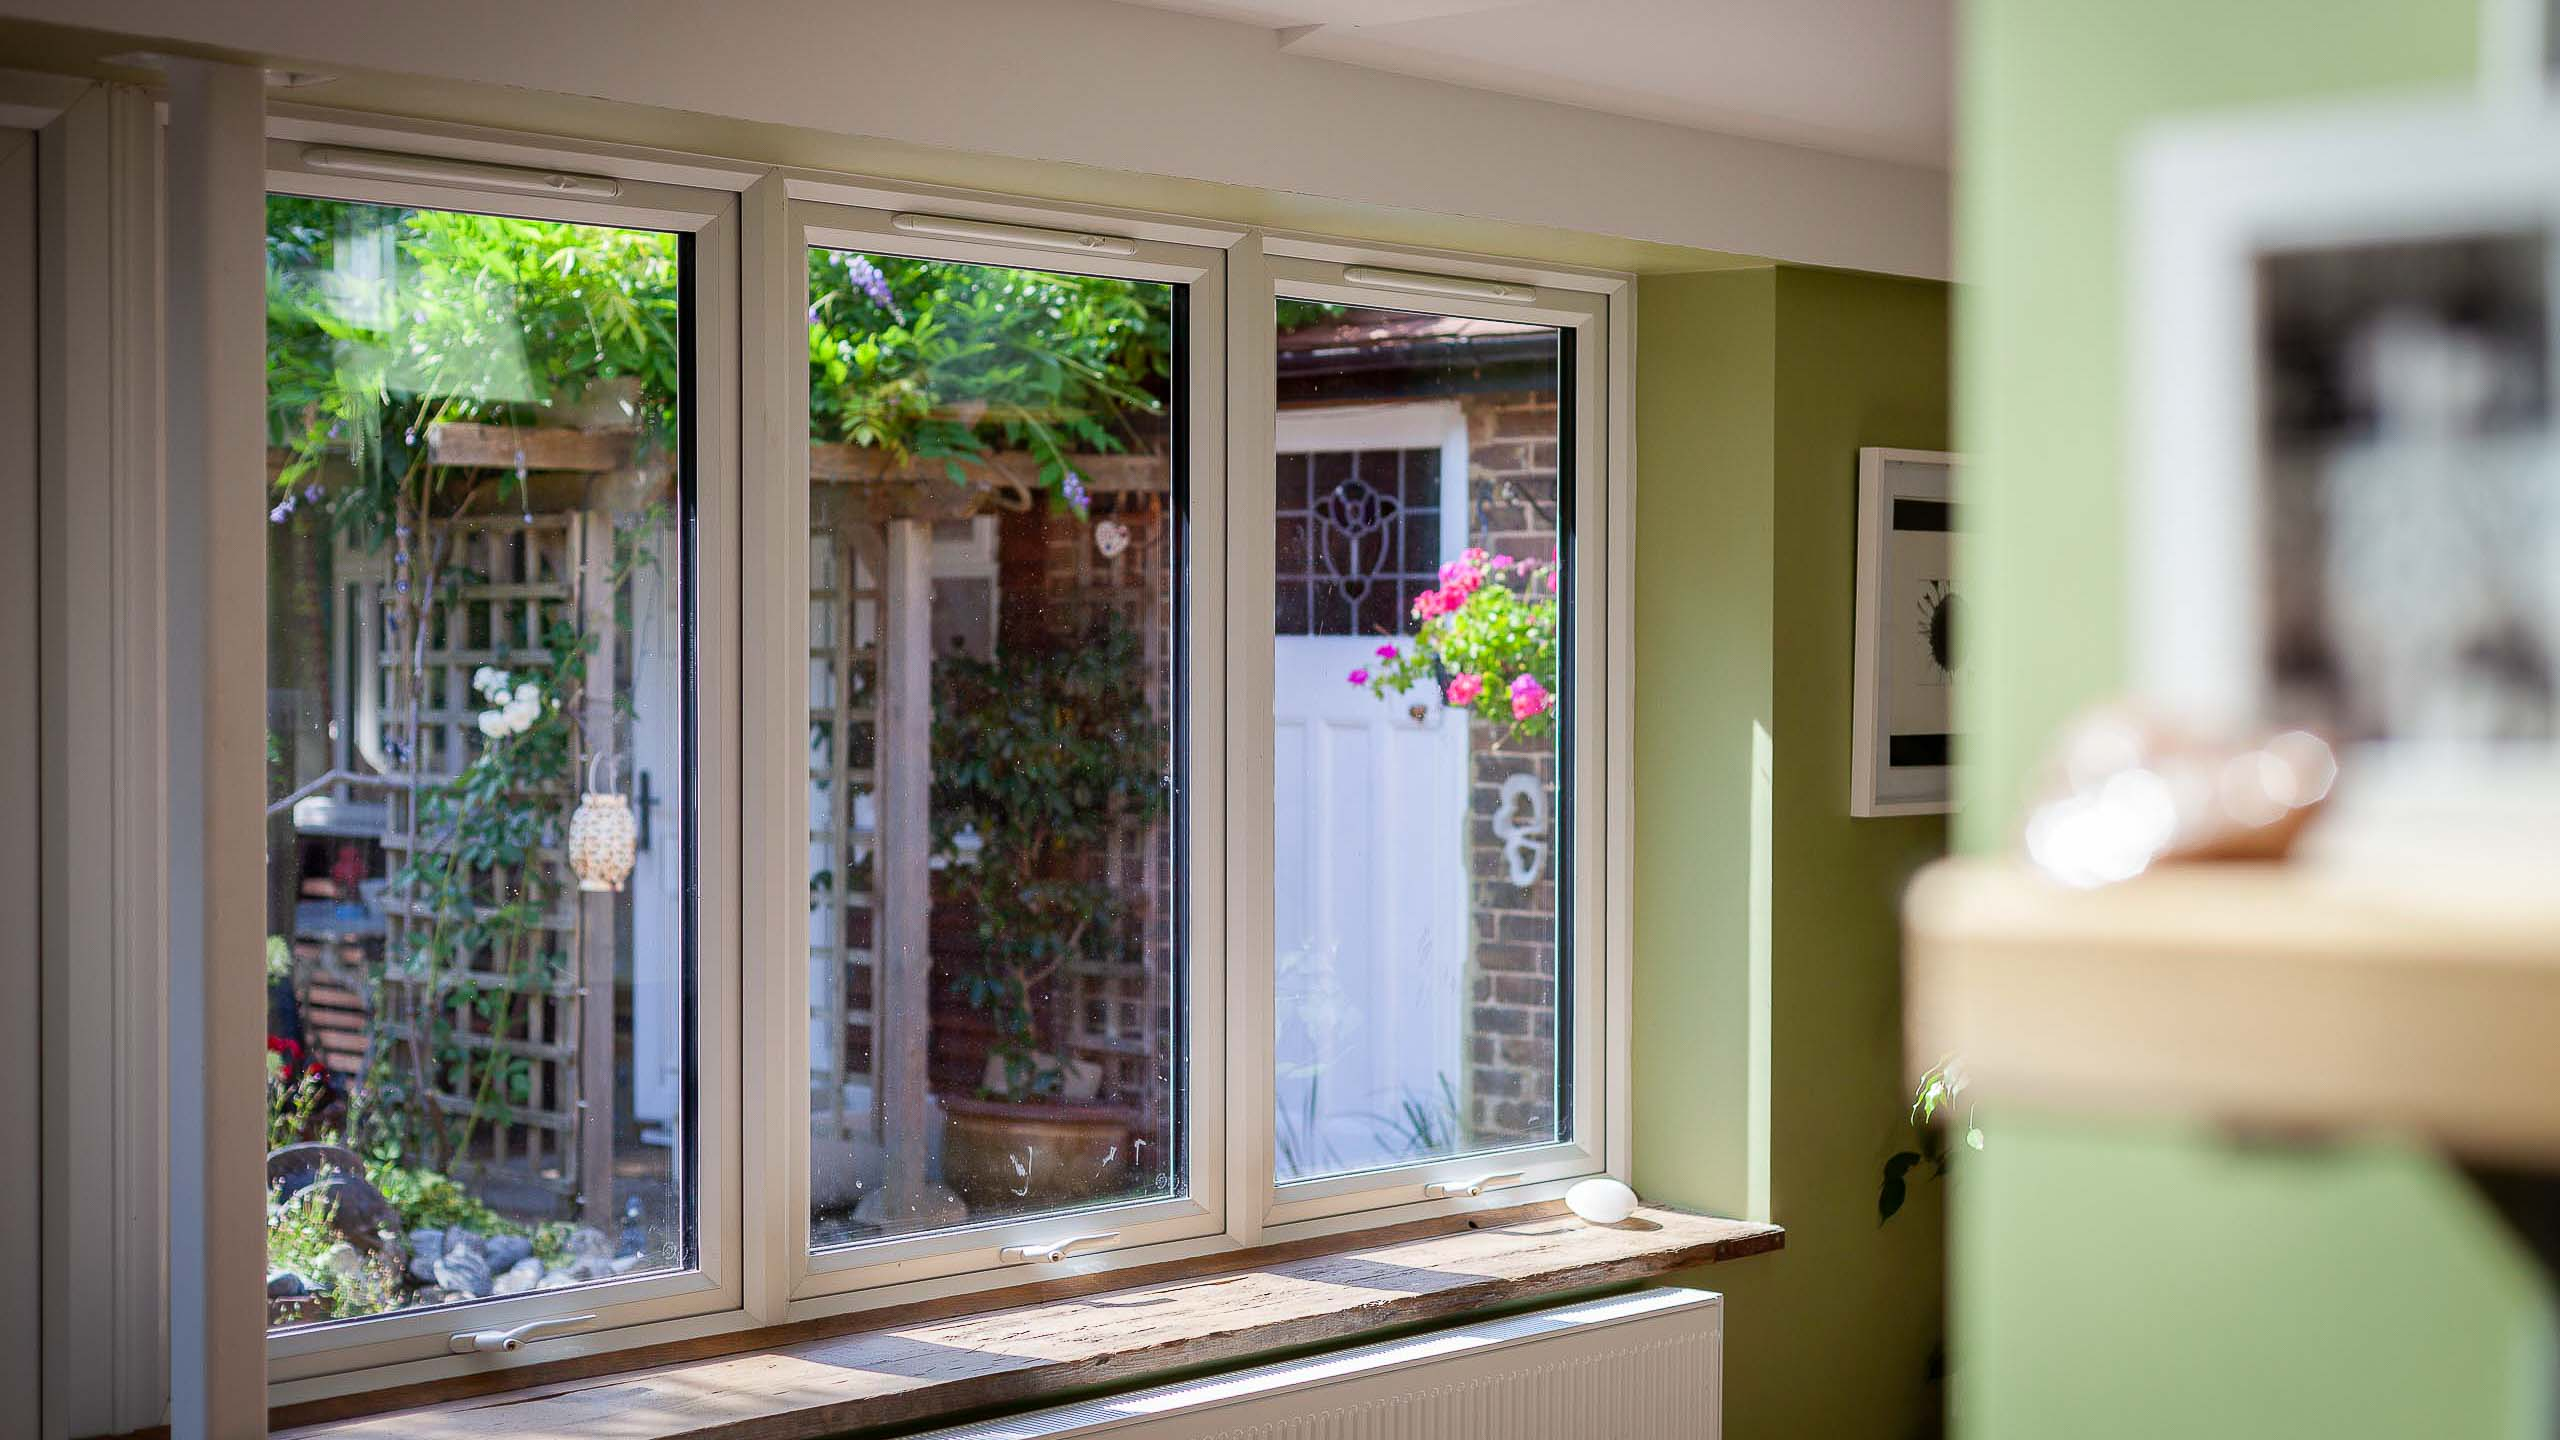 A new rear extension interior that required double glazing - all building services by RJ Steeles builders in Sussex